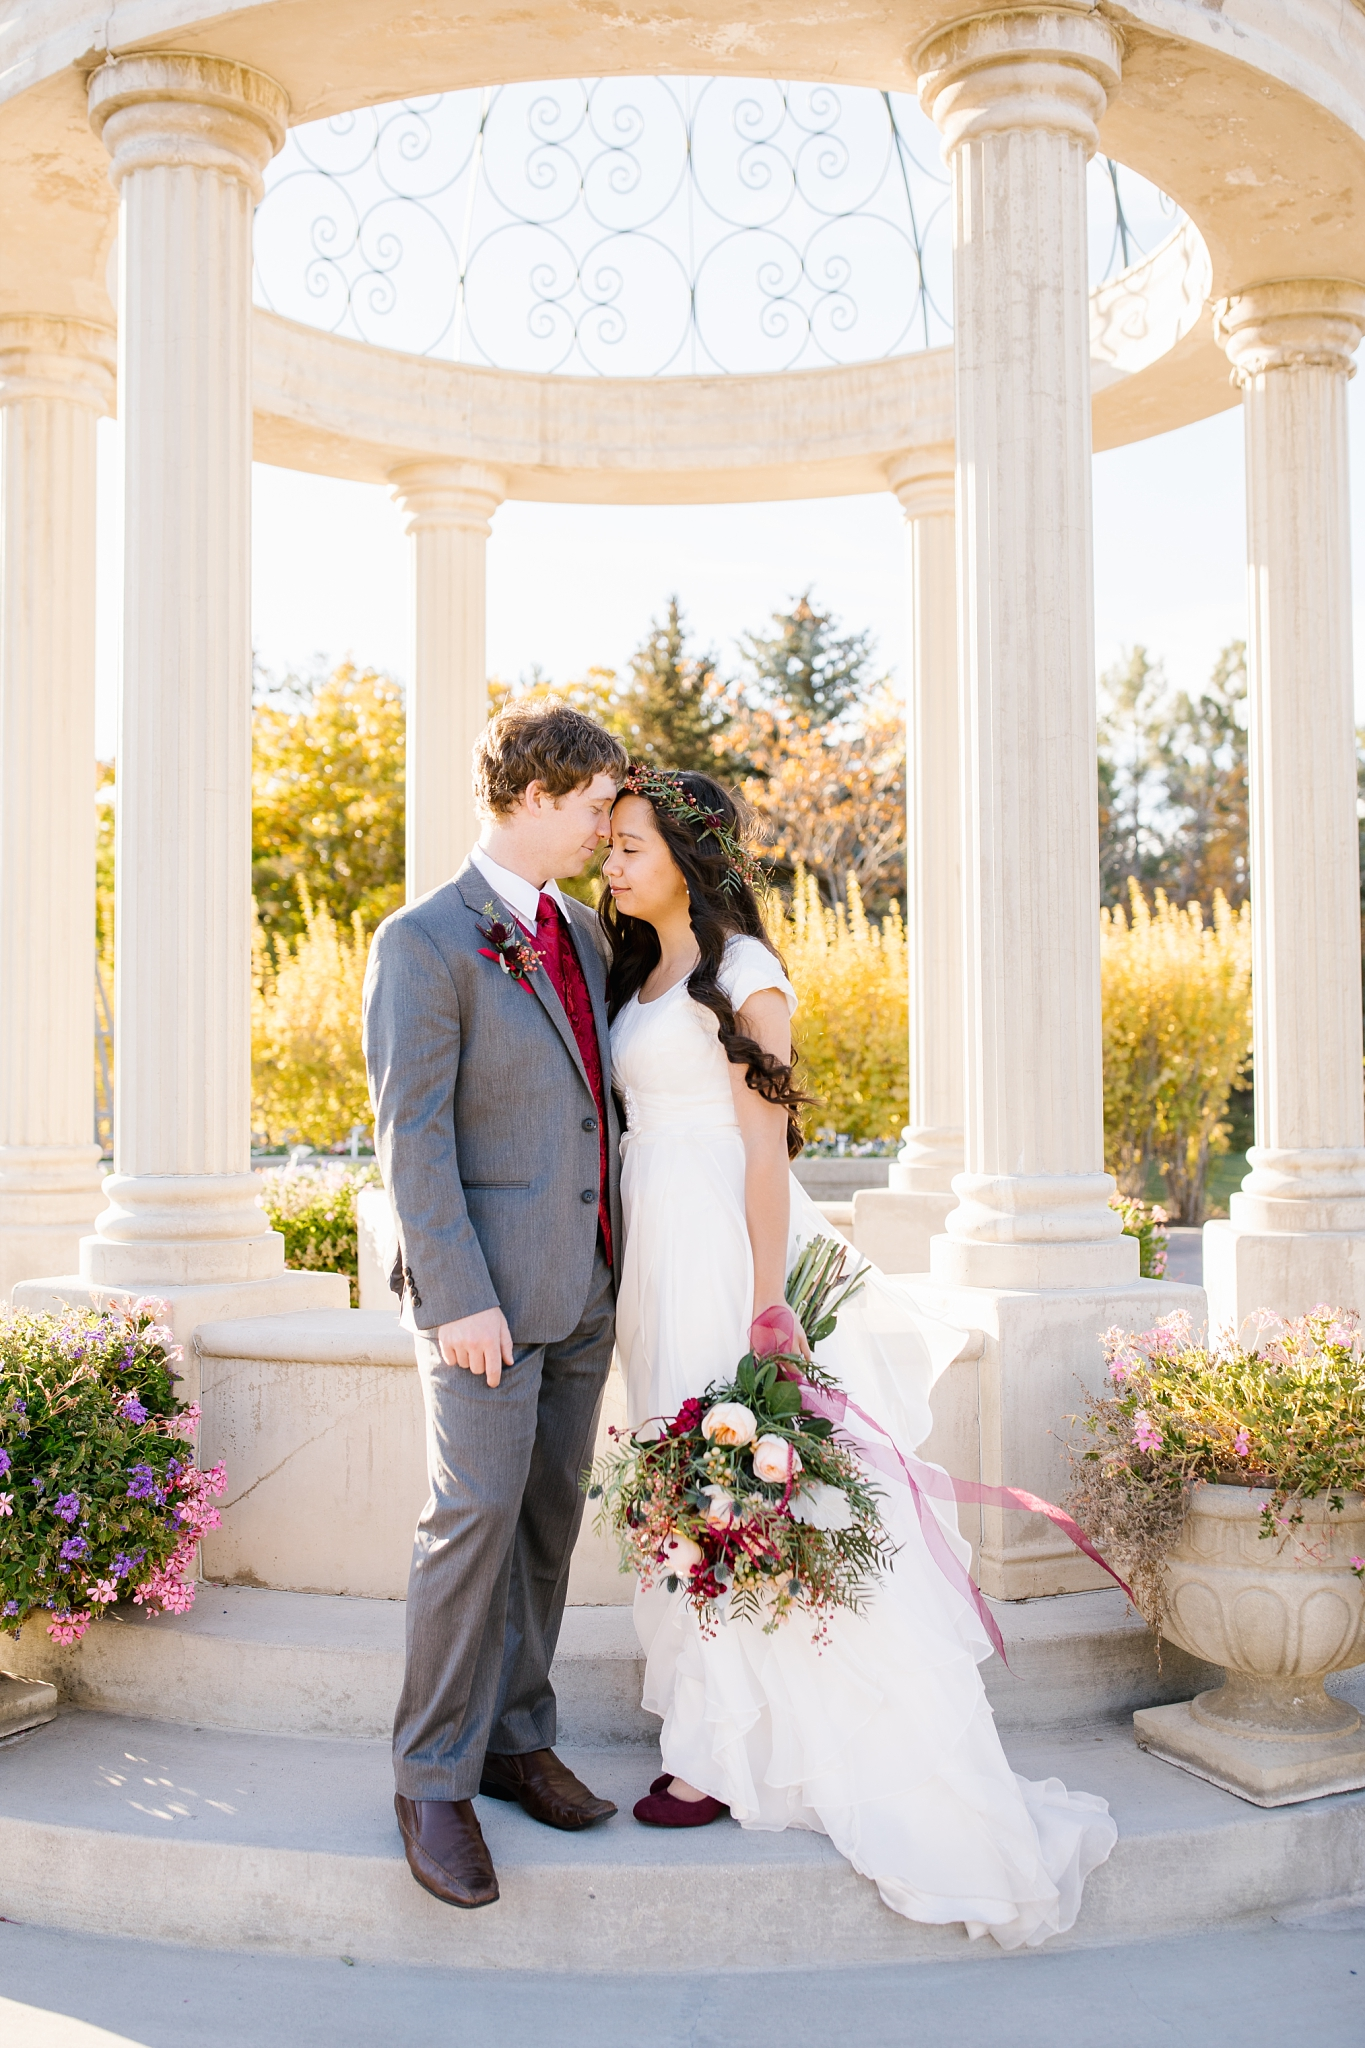 JB-Bridals-58_Lizzie-B-Imagery-Utah-Wedding-Photographer-Thanksgiving-Point-Ashton-Gardens-Lehi-Utah.jpg